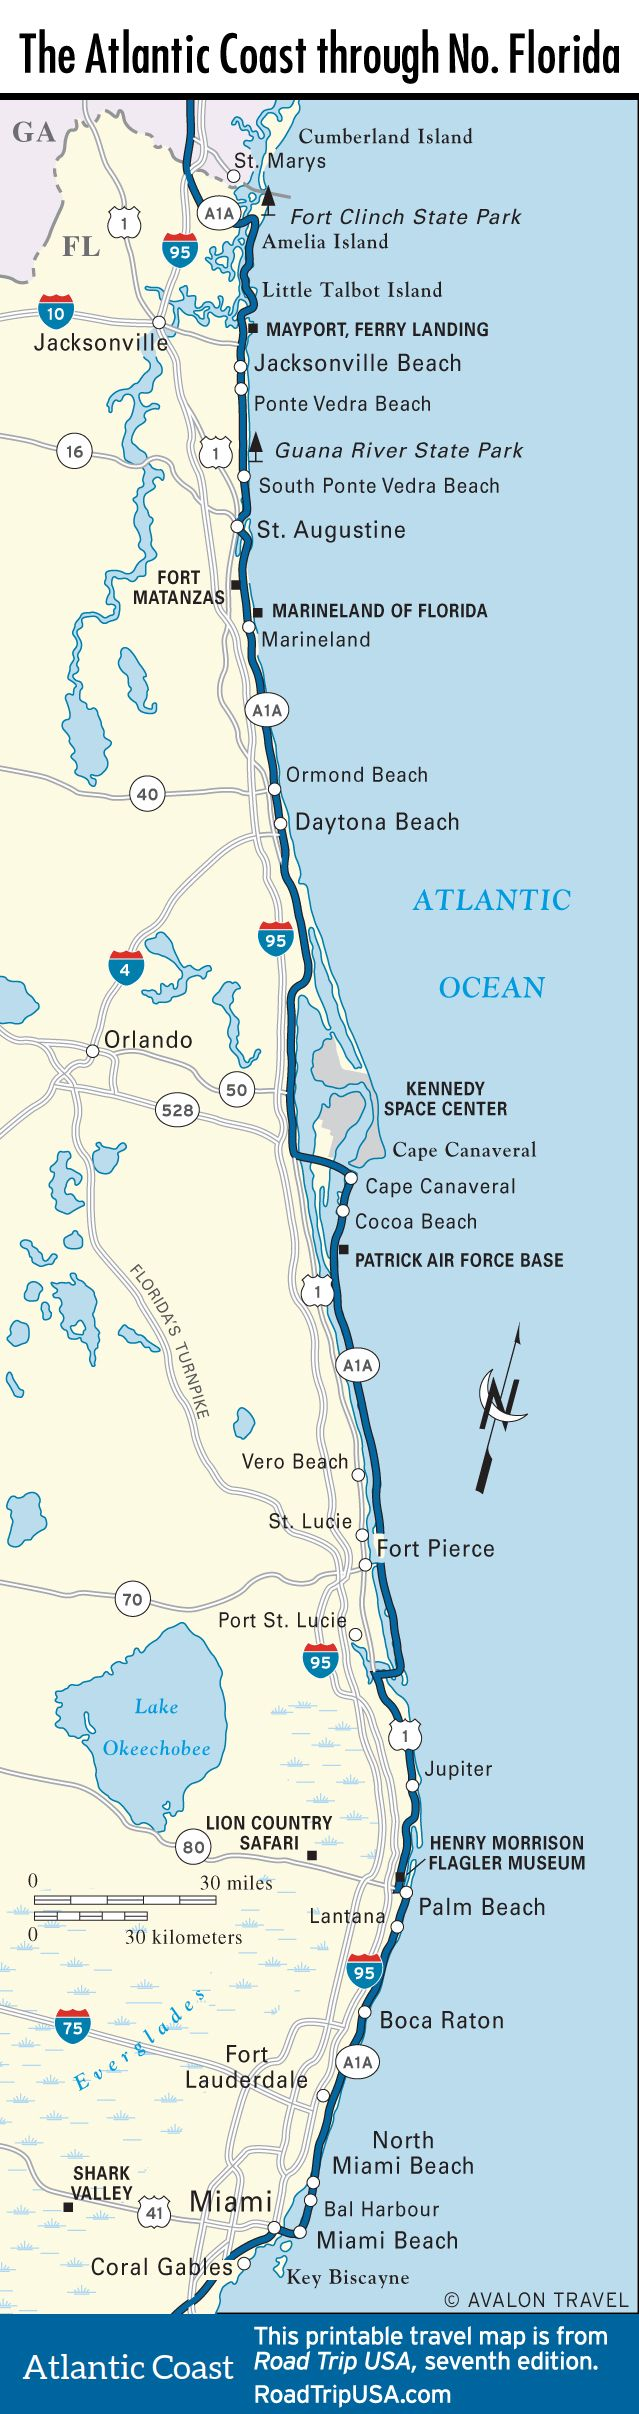 Atlantic Coast Florida Map.Map Of The Atlantic Coast Through Northern Florida